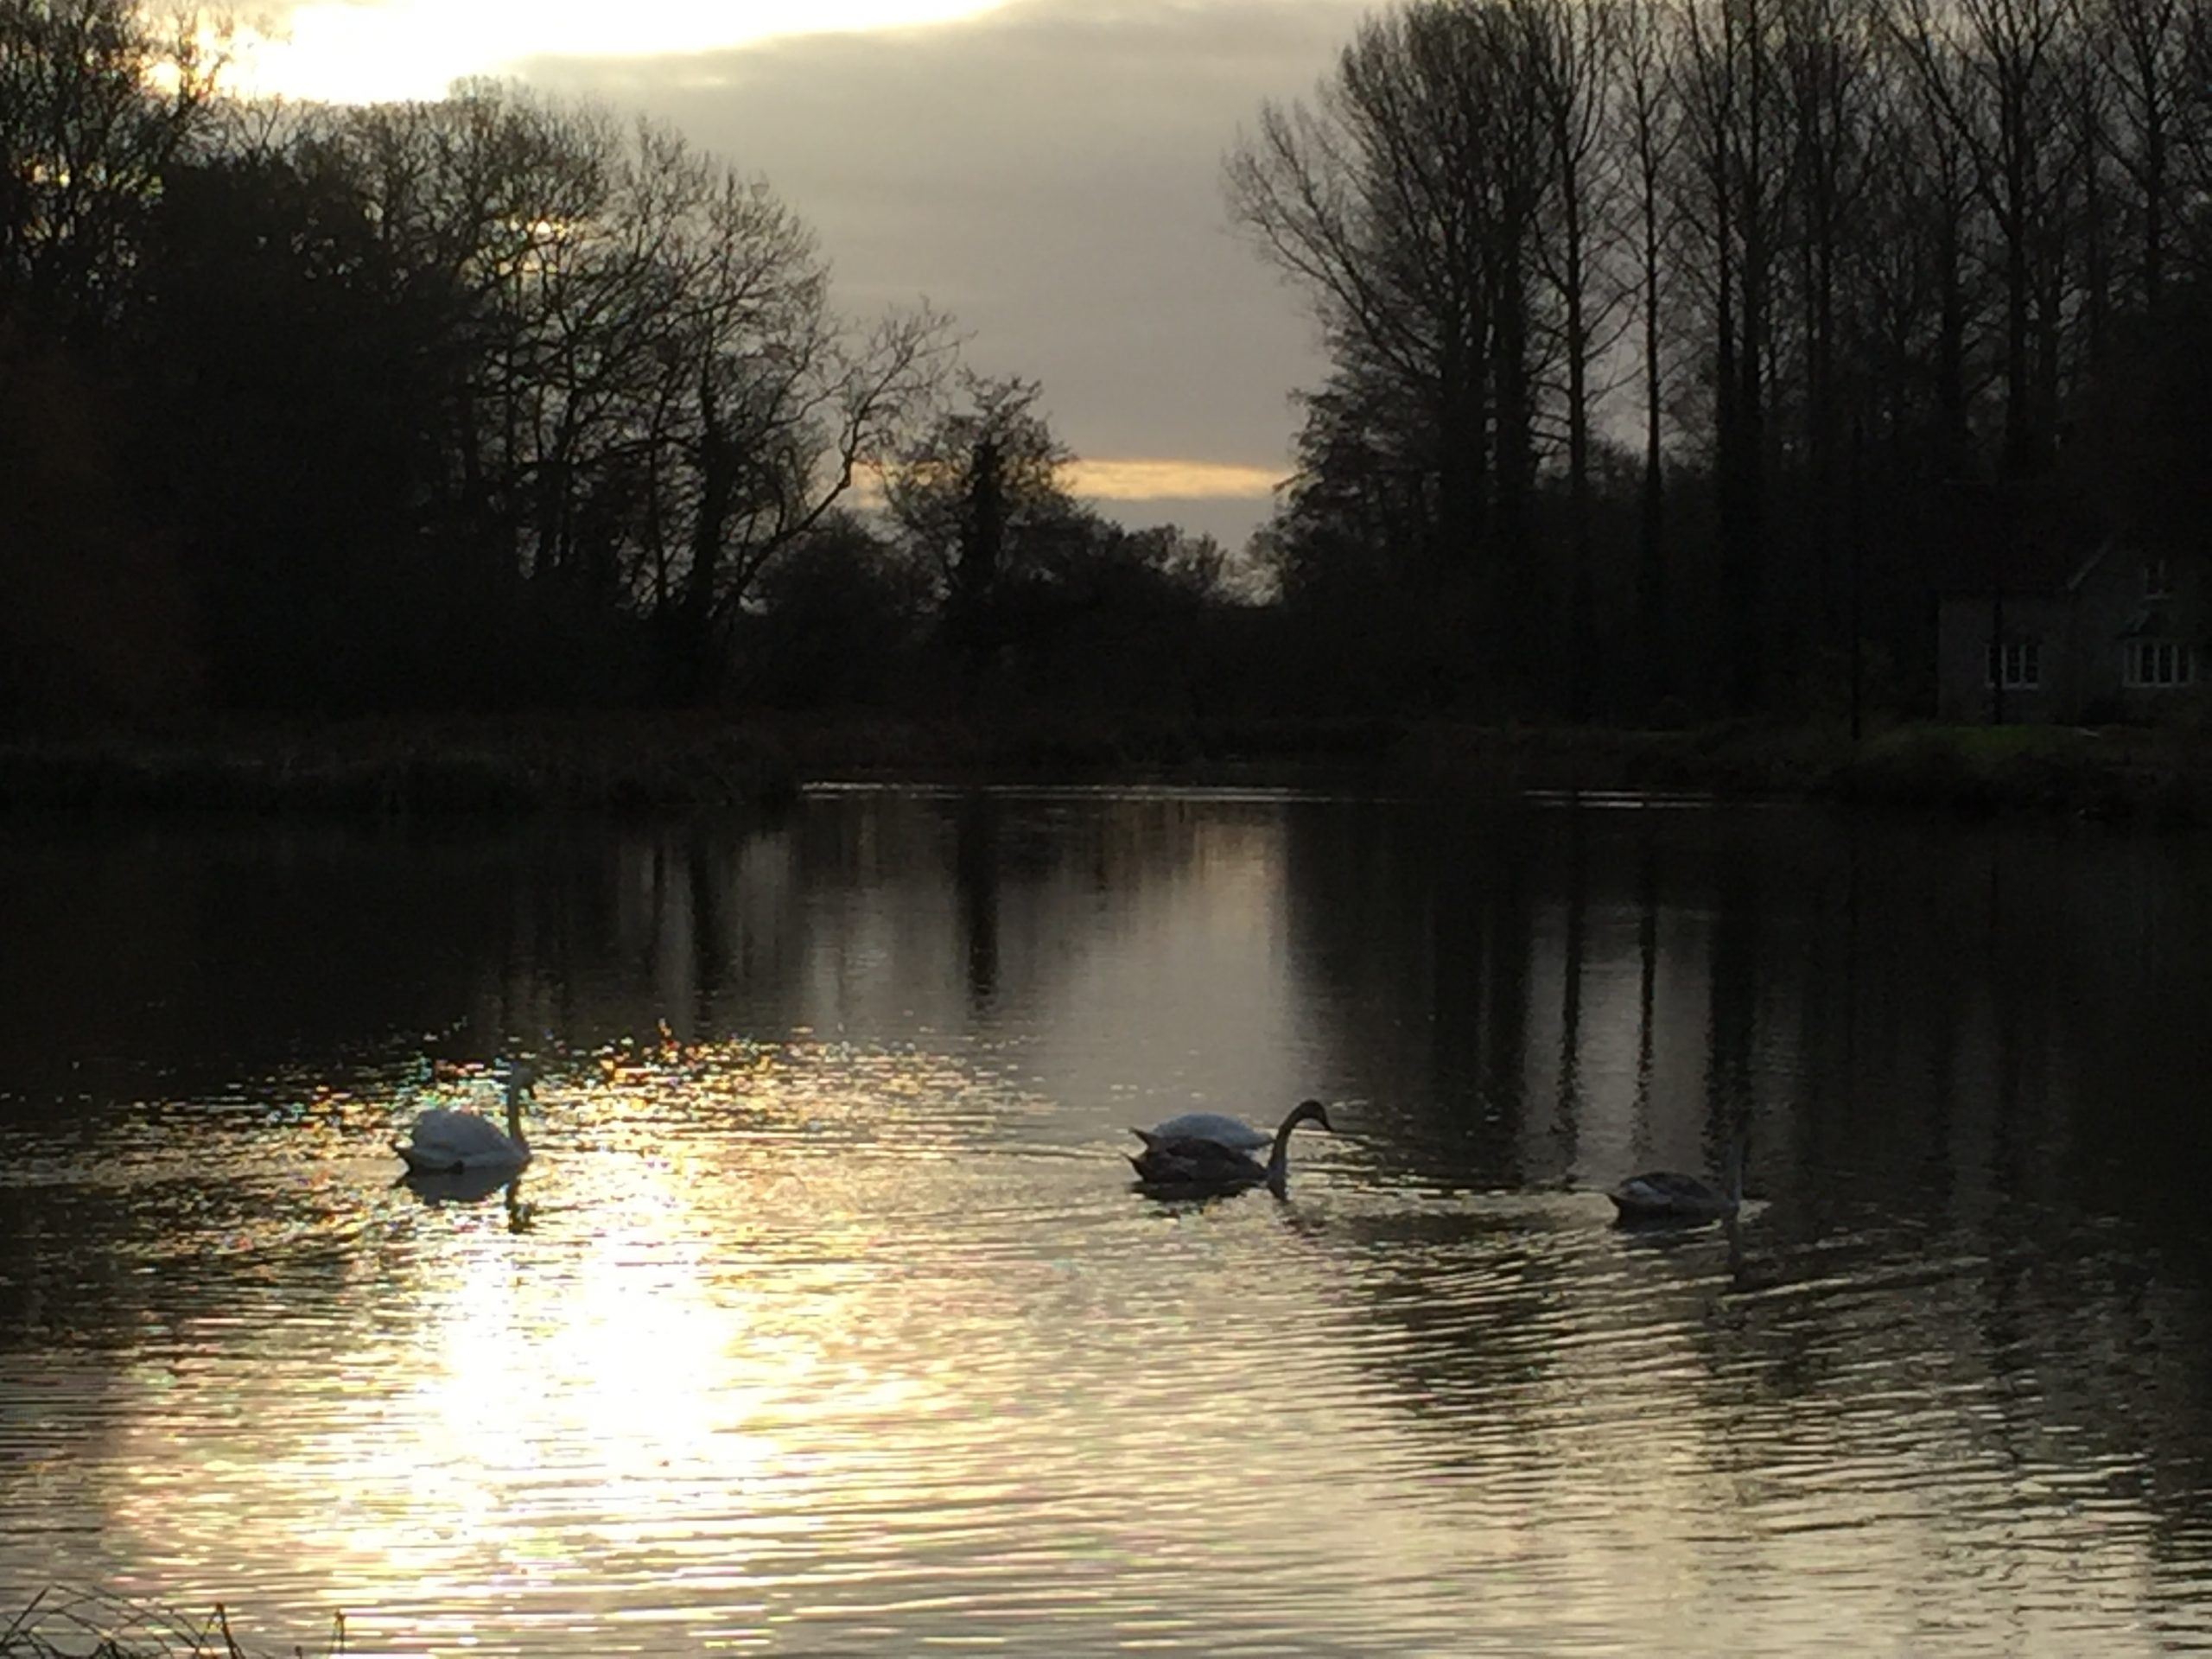 Swans in the evening on Bowley Mill pond